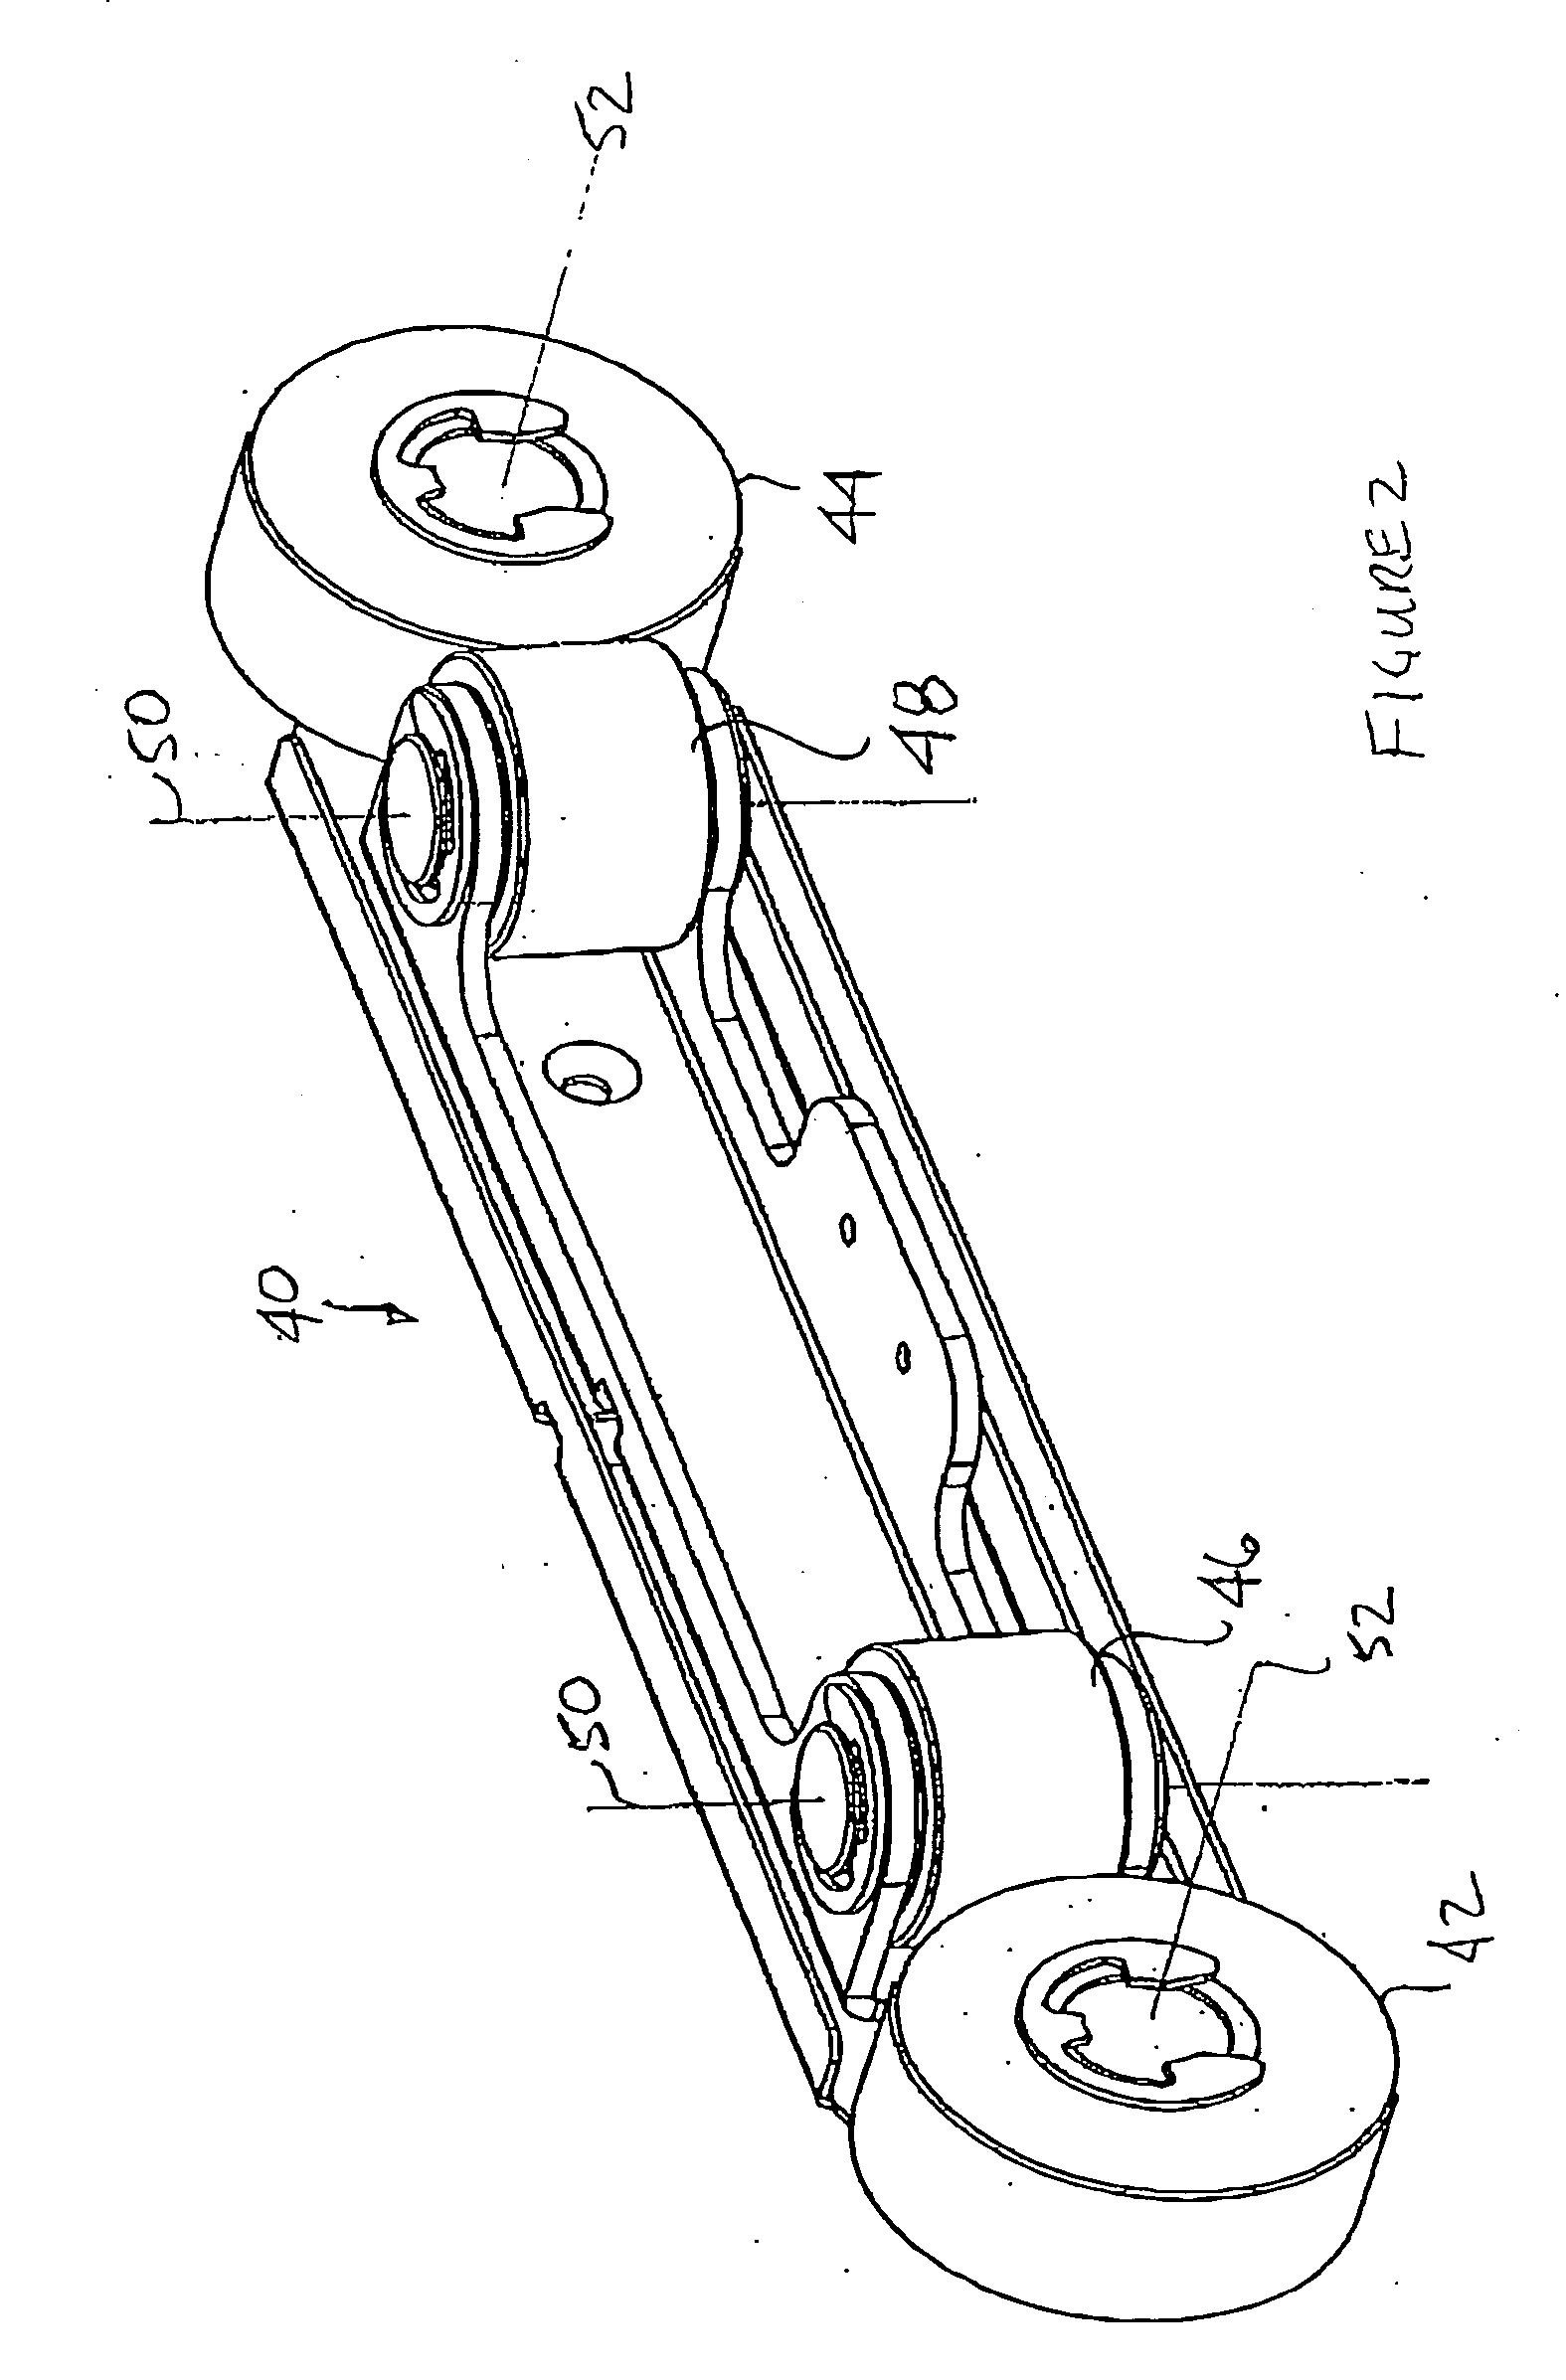 US20050224293A1 20051013 D00002 patent us20050224293 stair lift device google patents stair lift wiring diagram at reclaimingppi.co